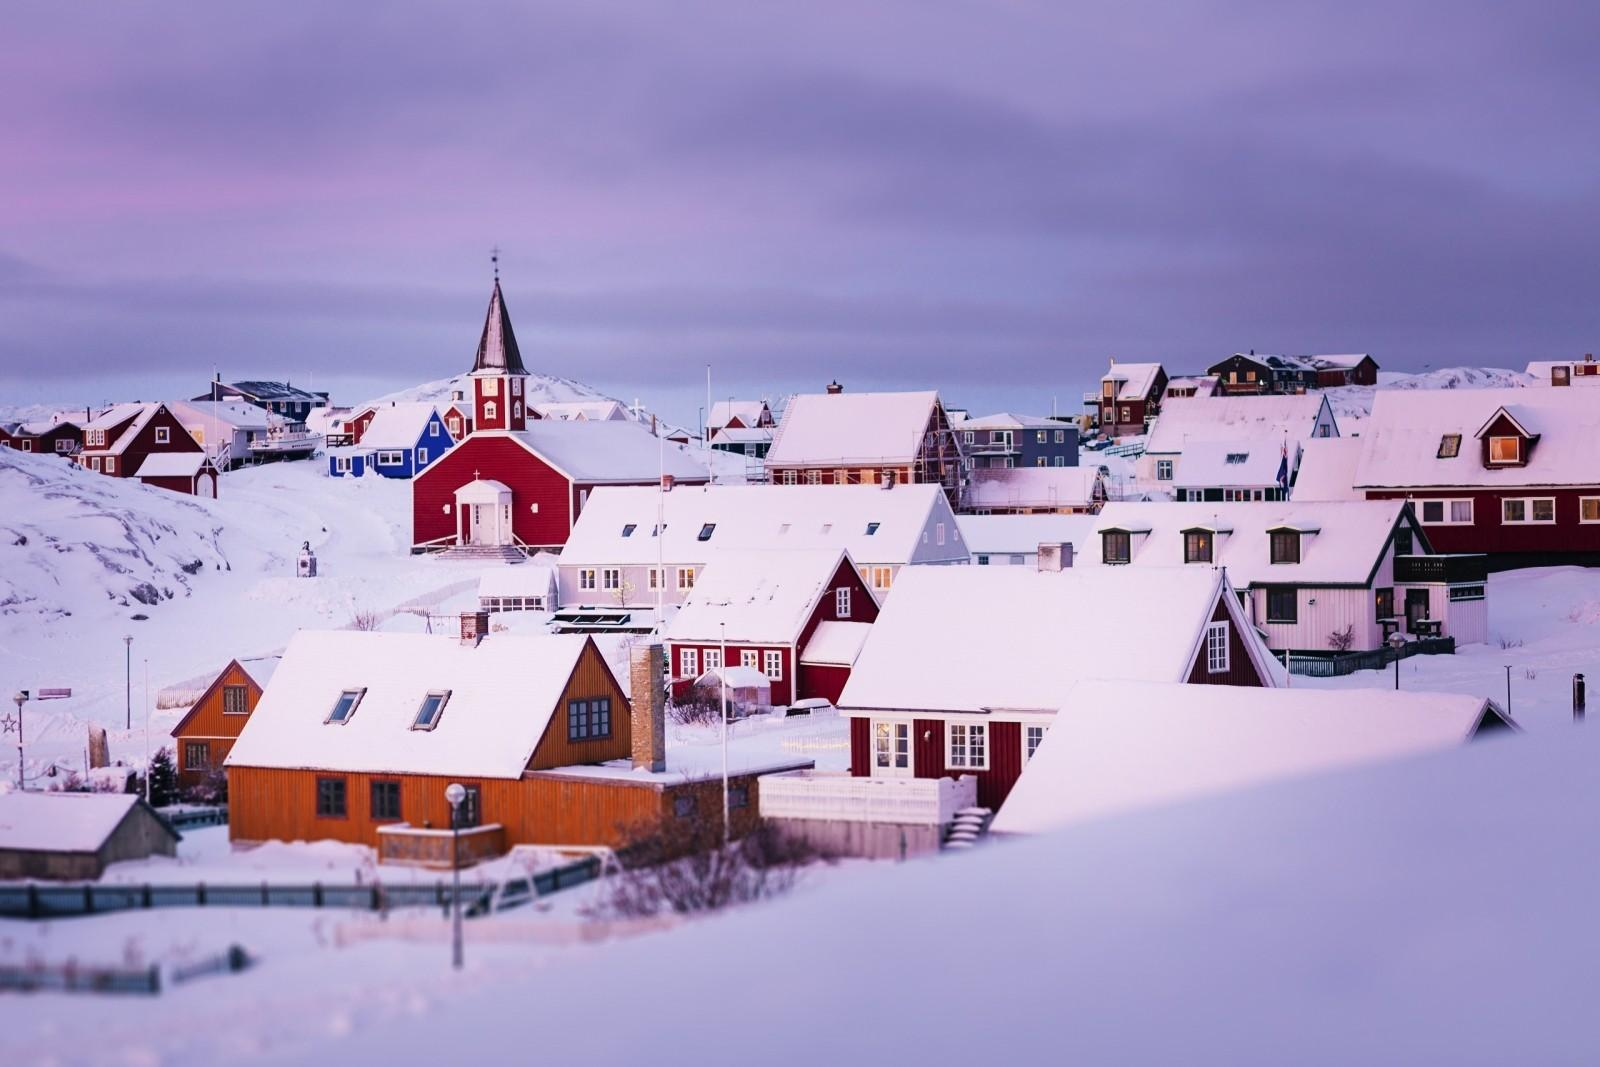 Before-The Red Church and the Old Nuuk area